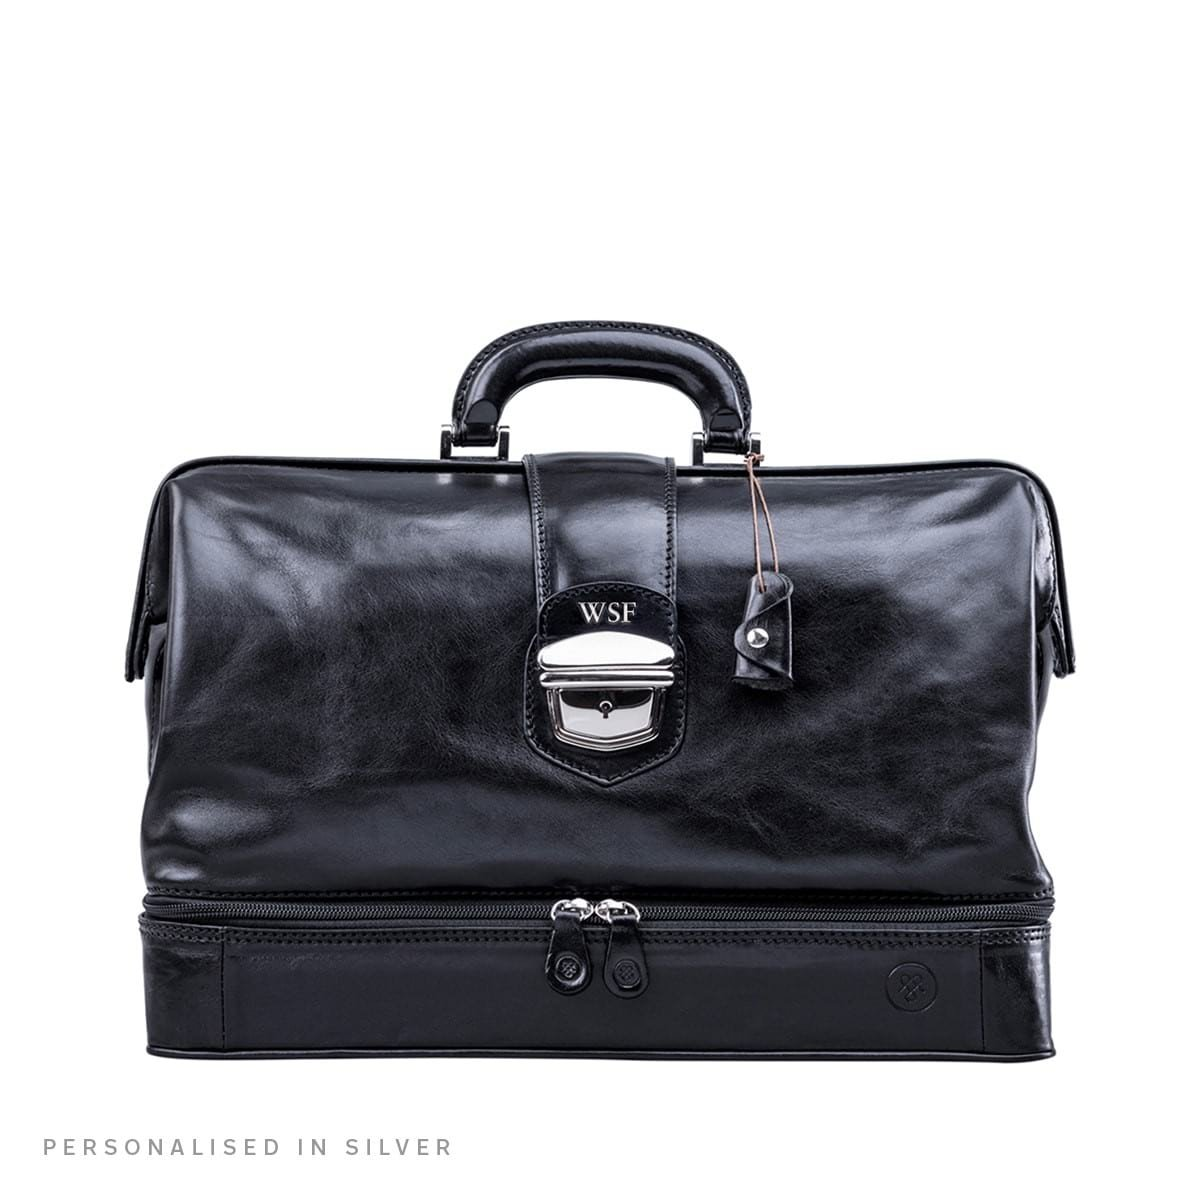 Maxwell Scott Personalized Luxury Black Leather Medical Bag (The DonniniL) - Large